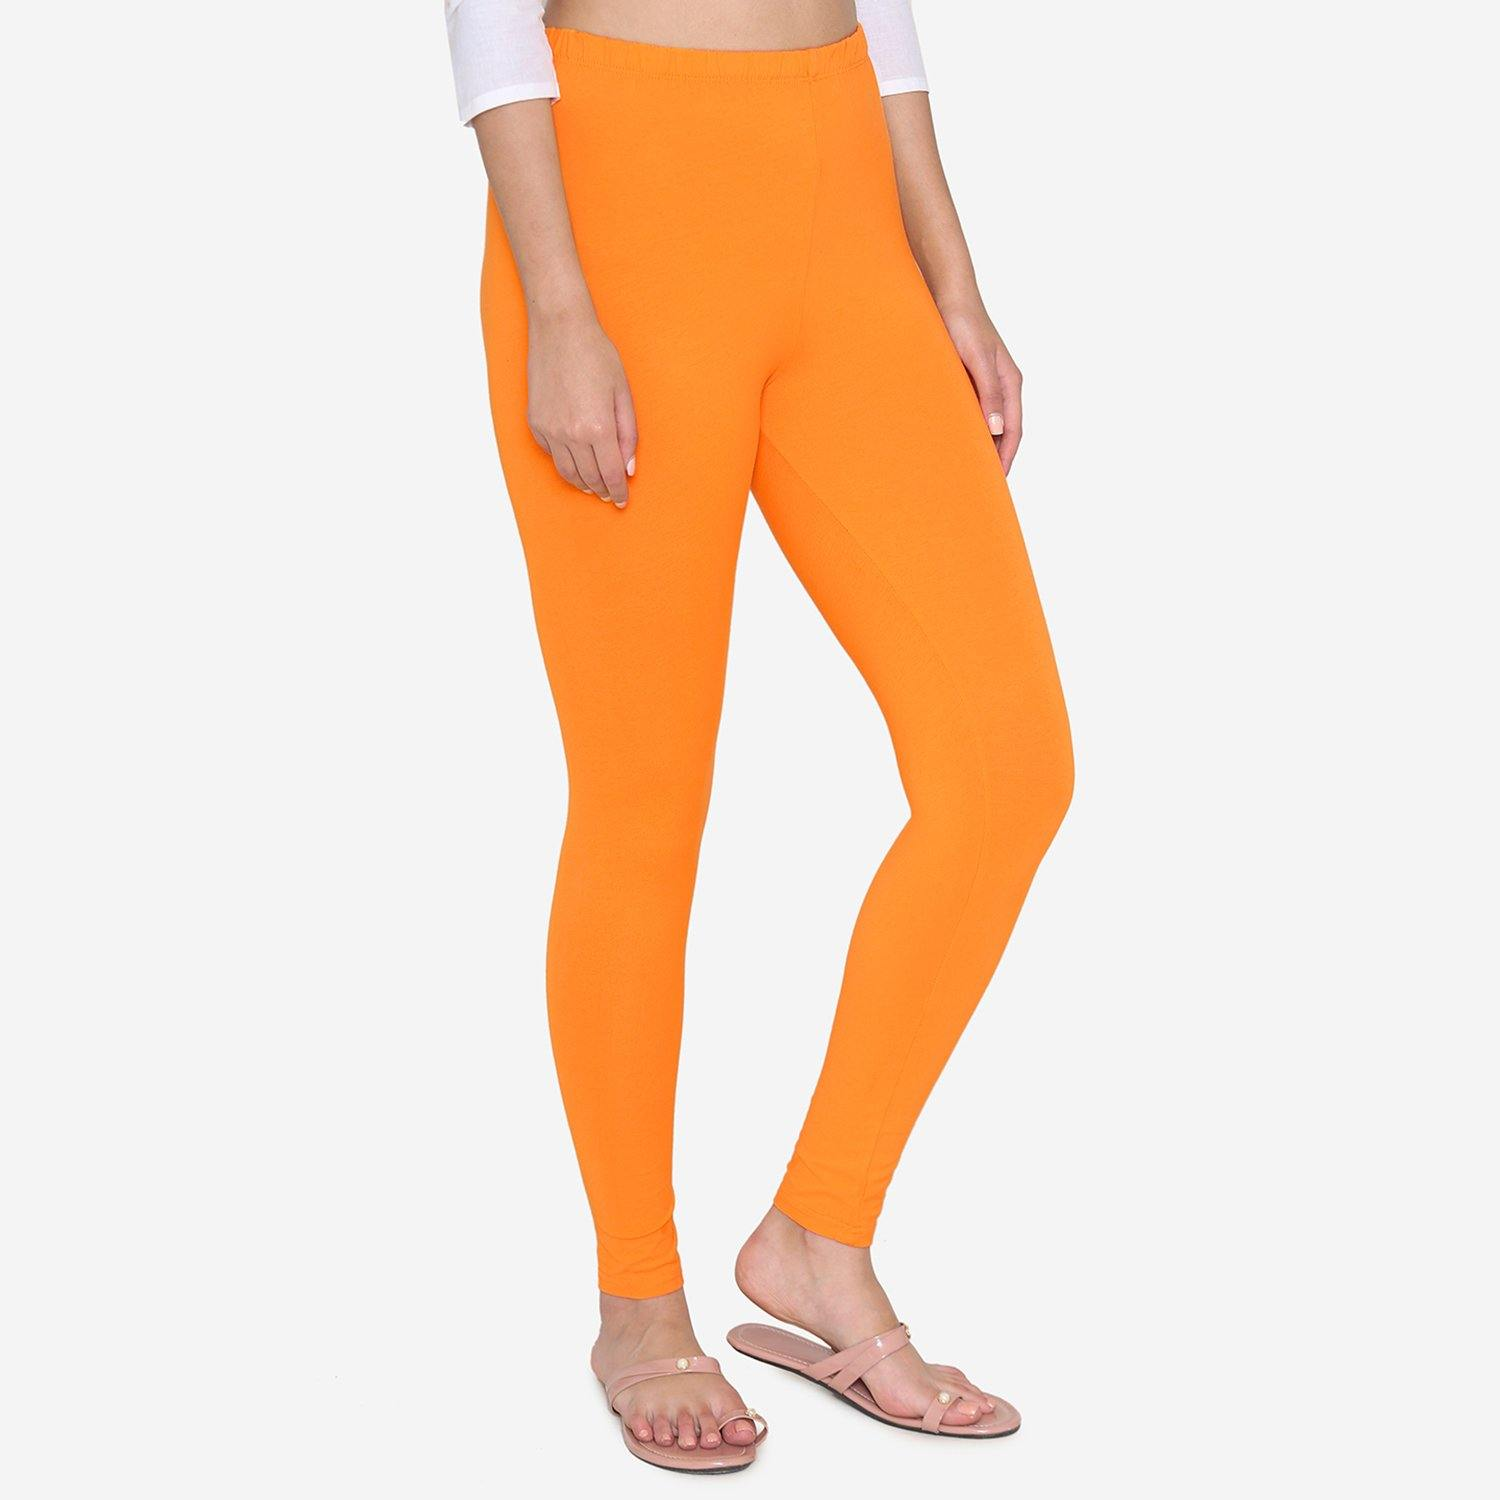 Vami Women's Cotton Stretchable Ankle Leggings -Fire